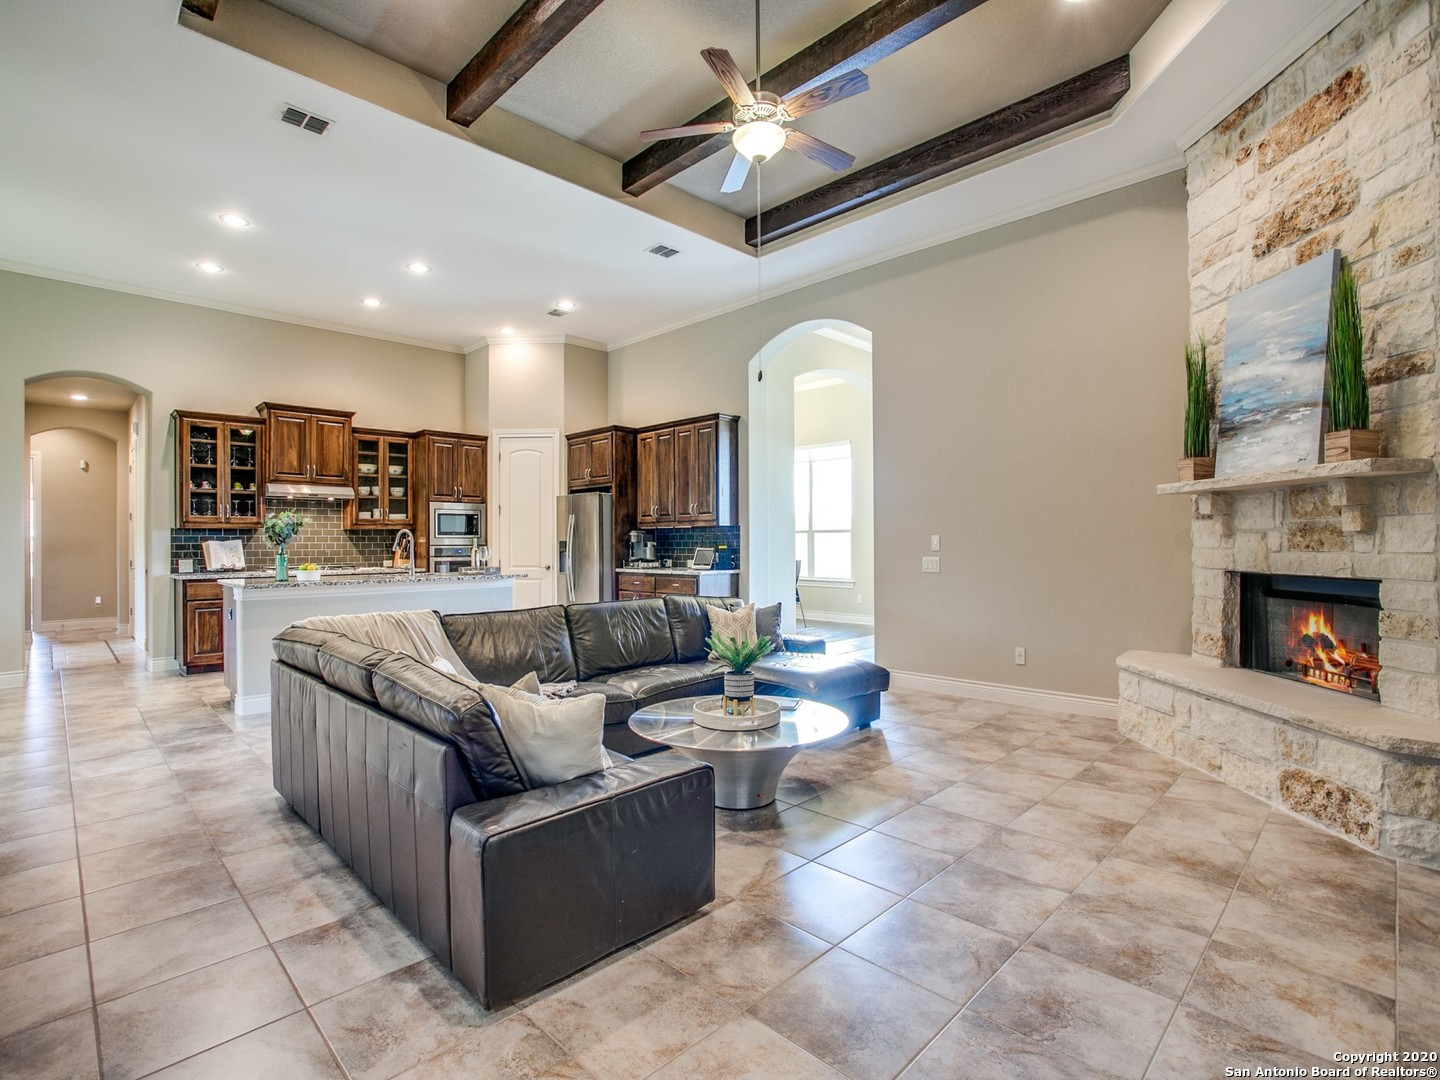 Exceptional property in the highly coveted Canyons at Scenic Loop! Impeccable 1 story home, purchased new in 2017. Add'l approx. 370 sq.ft. of living space of enclosed patio. Expansive corner lot of .64 acres with views overlooking the serene backyard that is ready for your dream pool. Virtual tour: https://my.matterport.com/show/?m=R8jFrC8aTgC&mls=1  Impressive curb appeal with the positioning of the home on the lot & a refined exterior of stone, stucco and metal roof. Enter through the light filled foyer to this elegant property that leads to the formal dining room & a study/office with French doors for privacy. Open plan living at its finest with a gourmet kitchen featuring custom cabinetry, glass tile backsplash, granite counters, & a roomy breakfast space overlooking the exquisite living room with floor to ceiling stone fireplace & impressive beamed ceiling!  A secondary living space media/game room for relaxing days at home. For privacy, the home offers a slit plan layout of the bedrooms. An airy Master with tray ceiling, crown molding & views to the backyard is your tranquil get-away. The master bath is a true statement, with 2 vanities, soaking tub & a huge walk through shower with dual shower heads & bench seat. Upgrades include solid surface flooring throughout, 8 ft. doors, crown molding. enlarged driveway, 3 car oversized/ extended garage. The patio has been completely enclosed & upgraded with a full kitchen including a barbecue plus a gas cook top, stove & A/C for comfort!  Glass sliders to the expansive back yard -your luxurious home awaits in the idyllic Hill Country setting of The Canyons!! Proximity to La Cantera, The Rim!